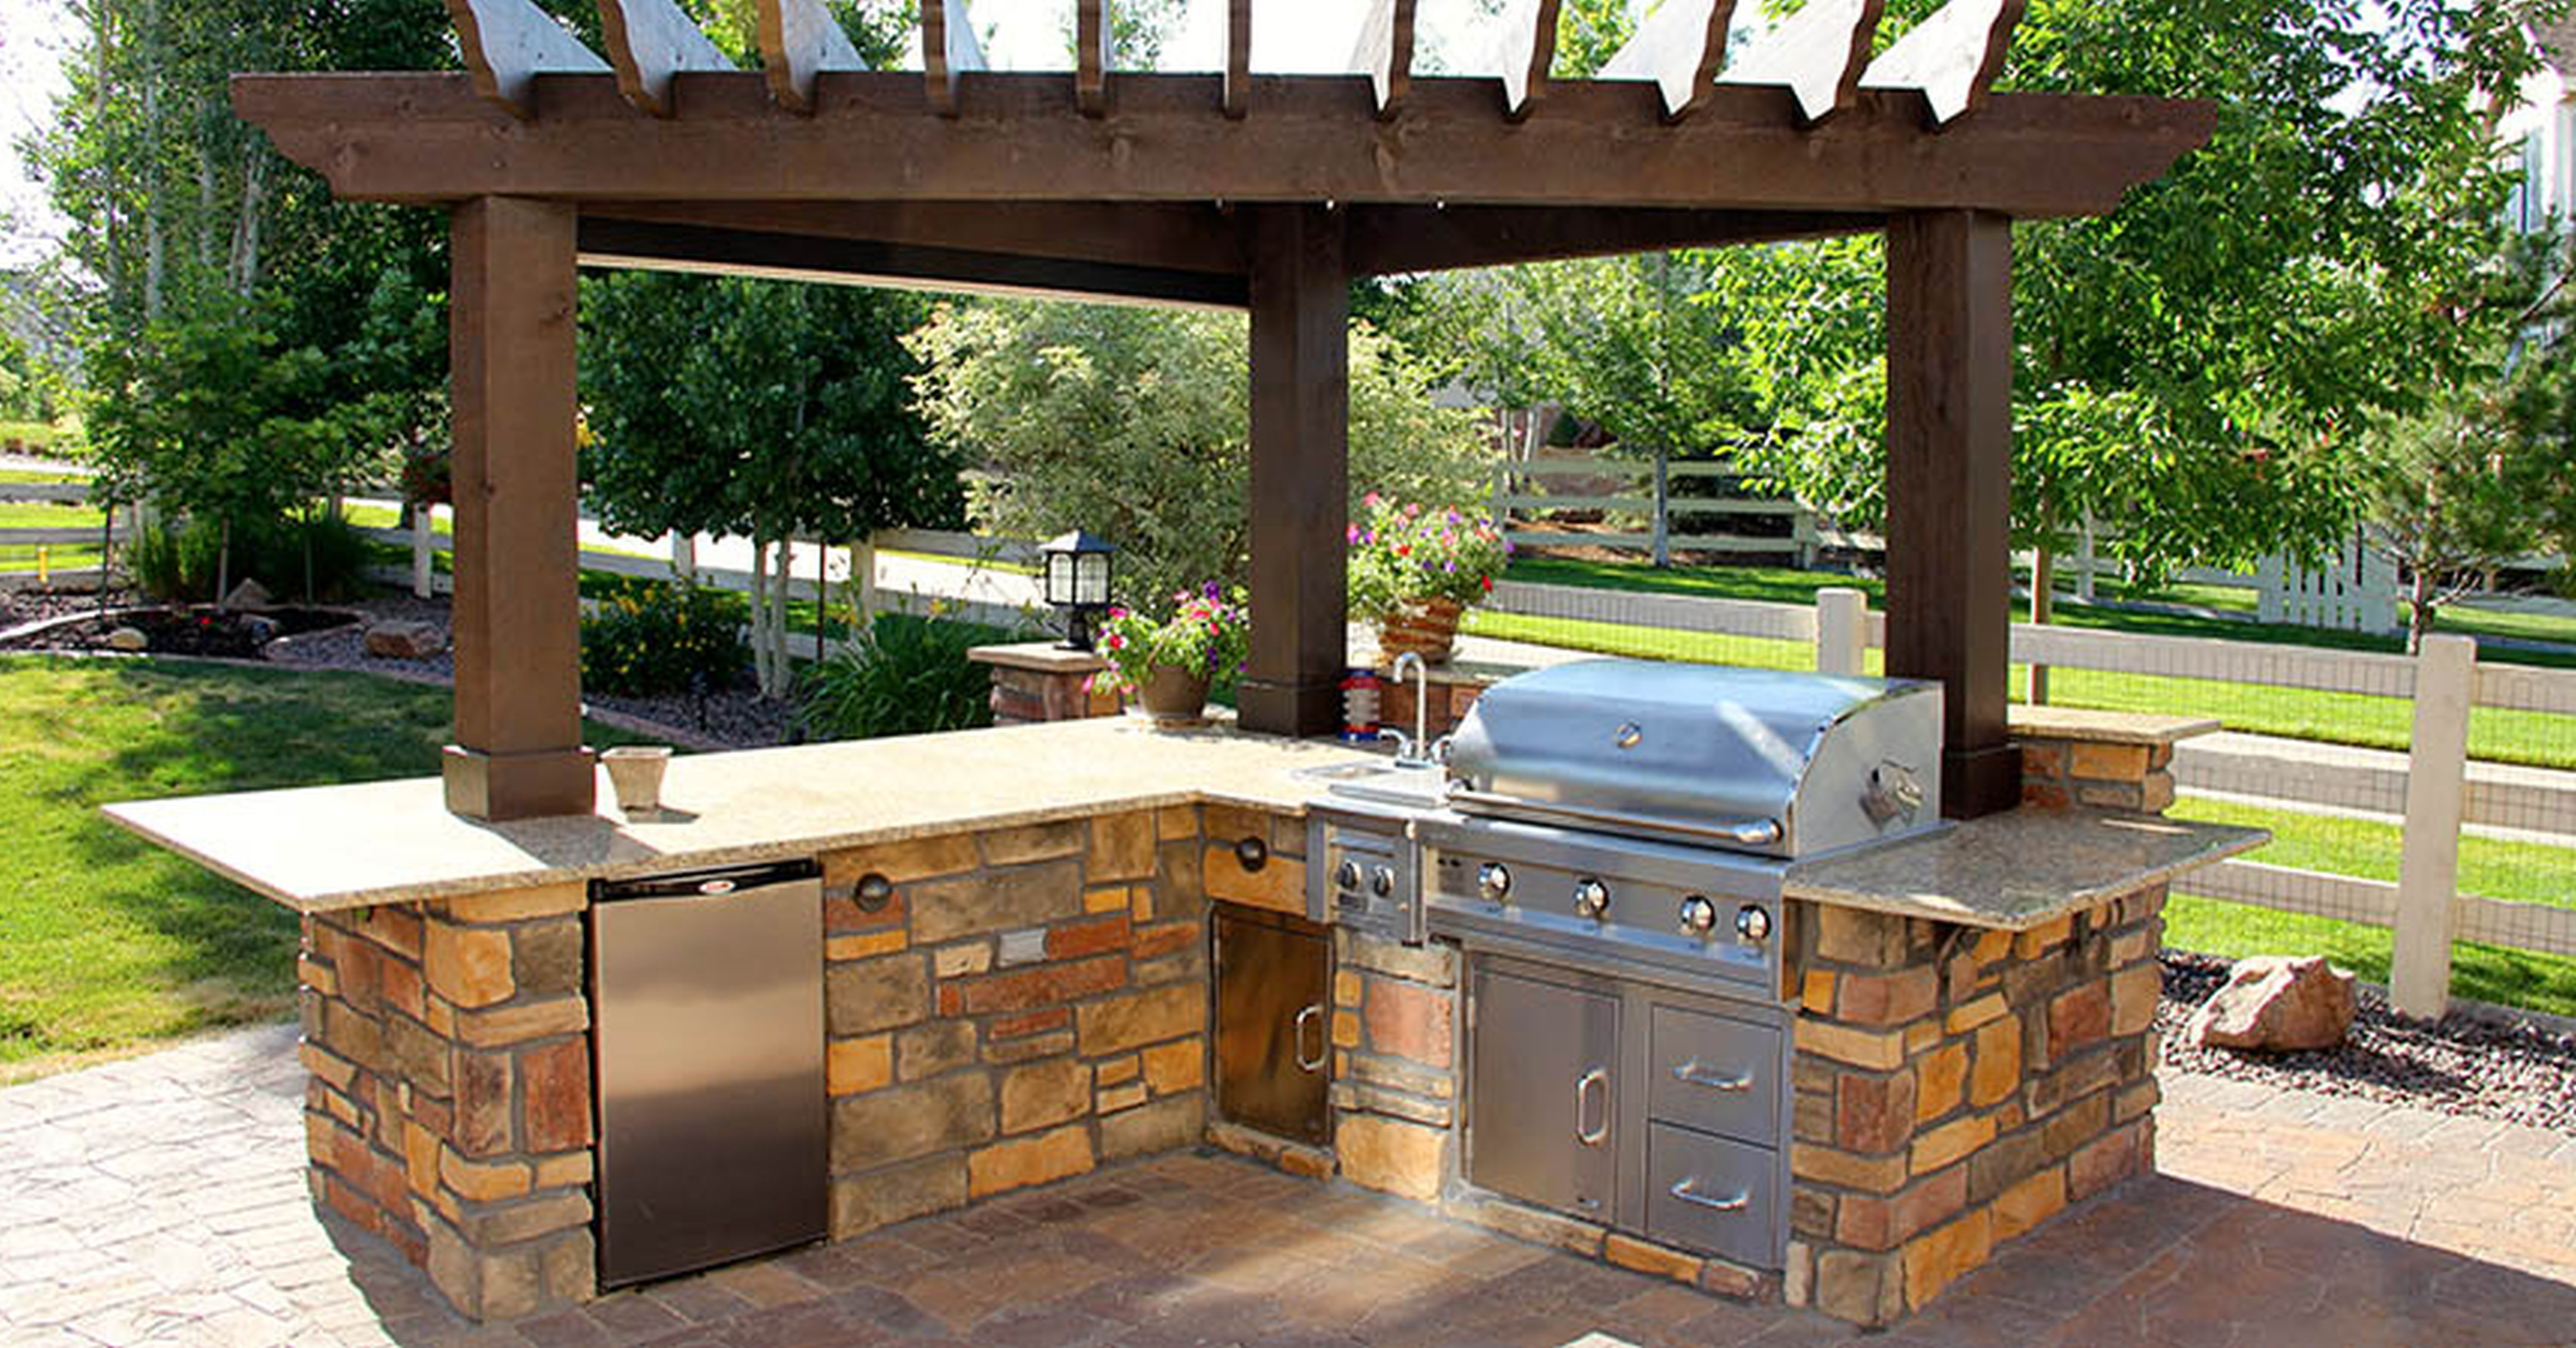 outdoor kitchen plans photo - 4